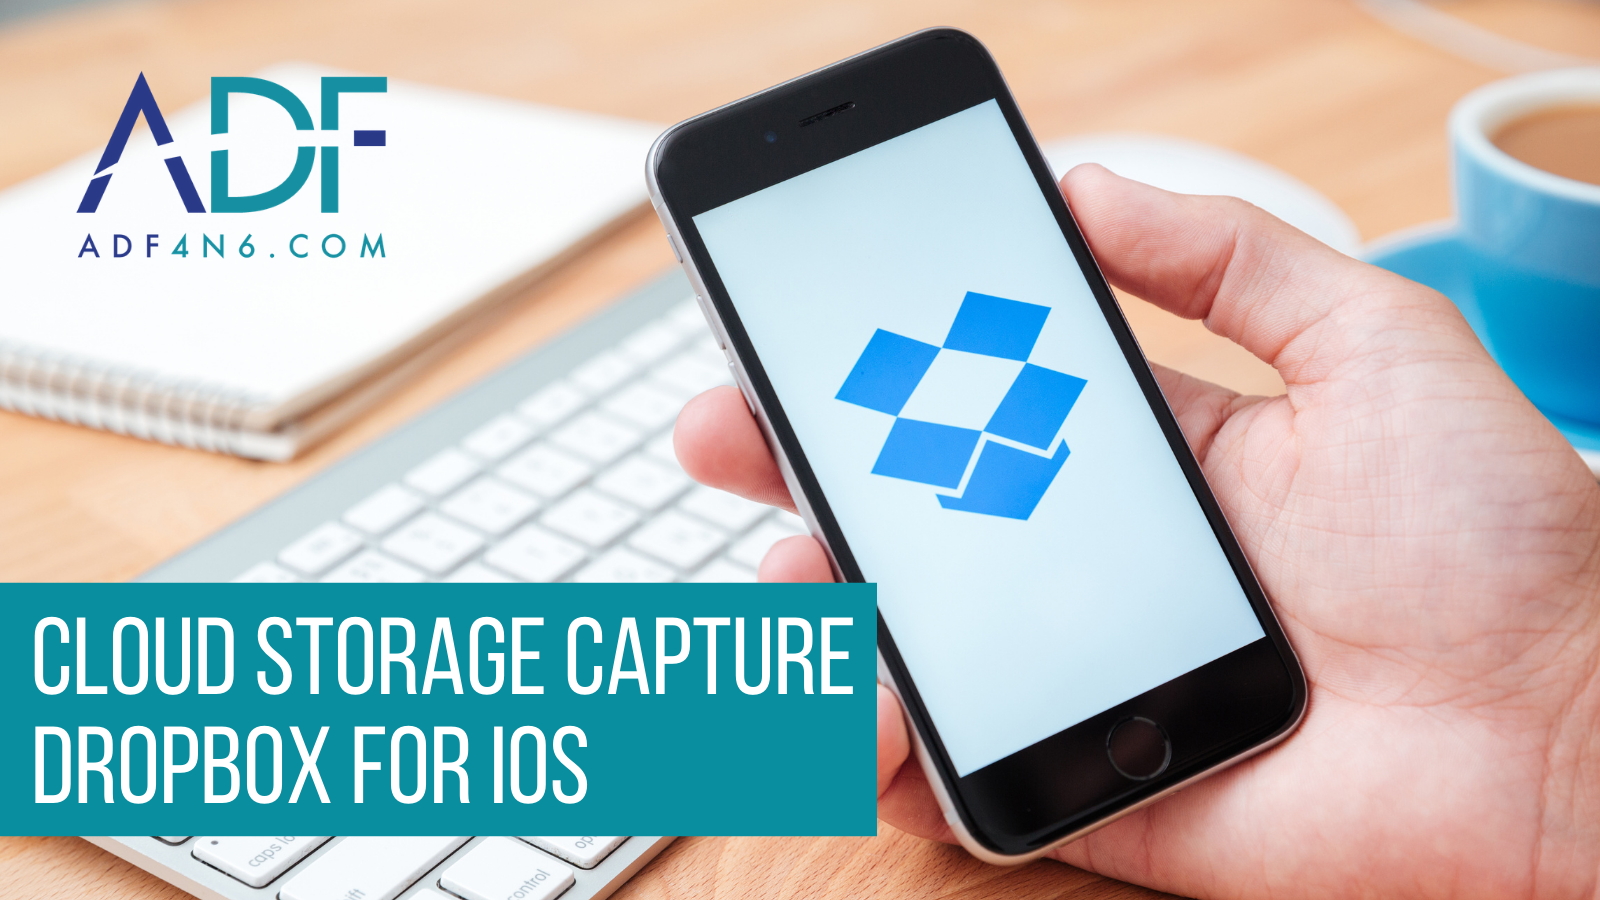 Dropbox Forensics for iOS Cloud Storage Capture